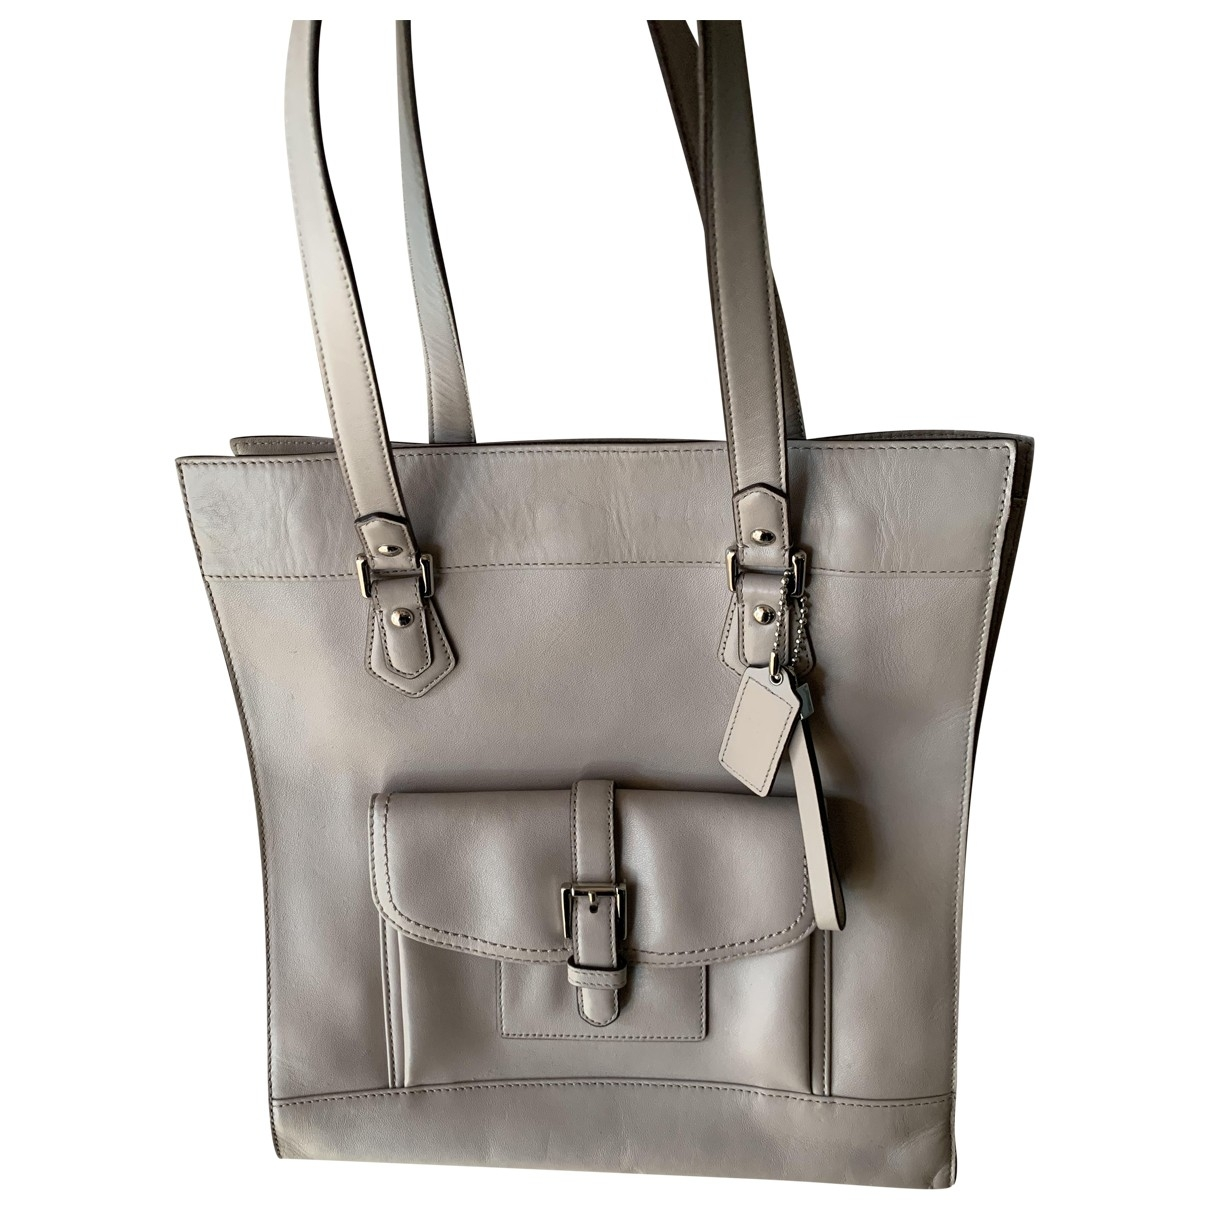 Coach \N Beige Leather handbag for Women \N